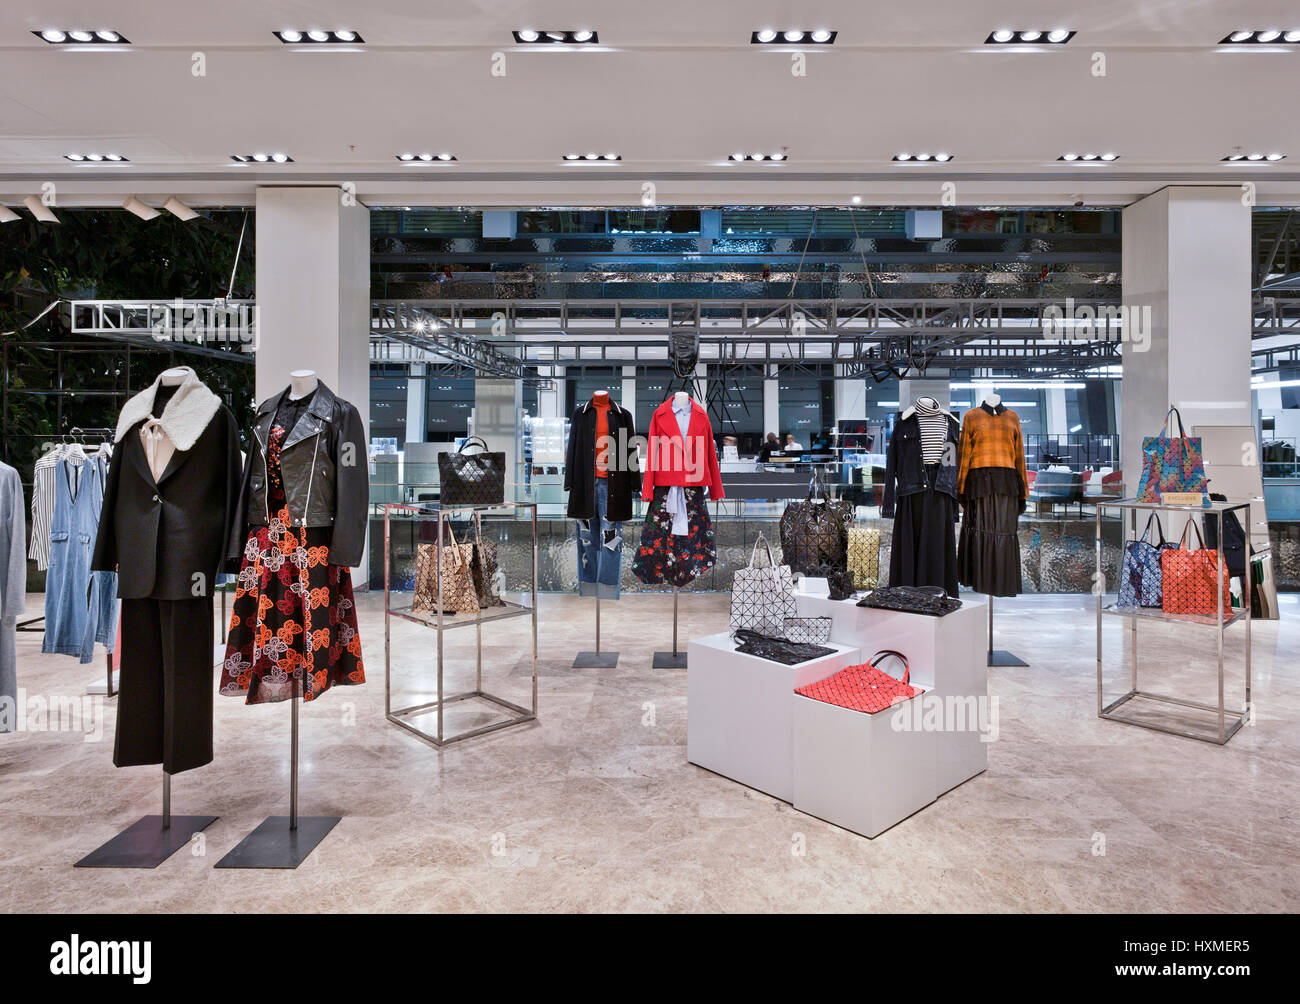 Fashion boutique in 'Tsvetnoy' shopping mall in Moscow - Stock Image